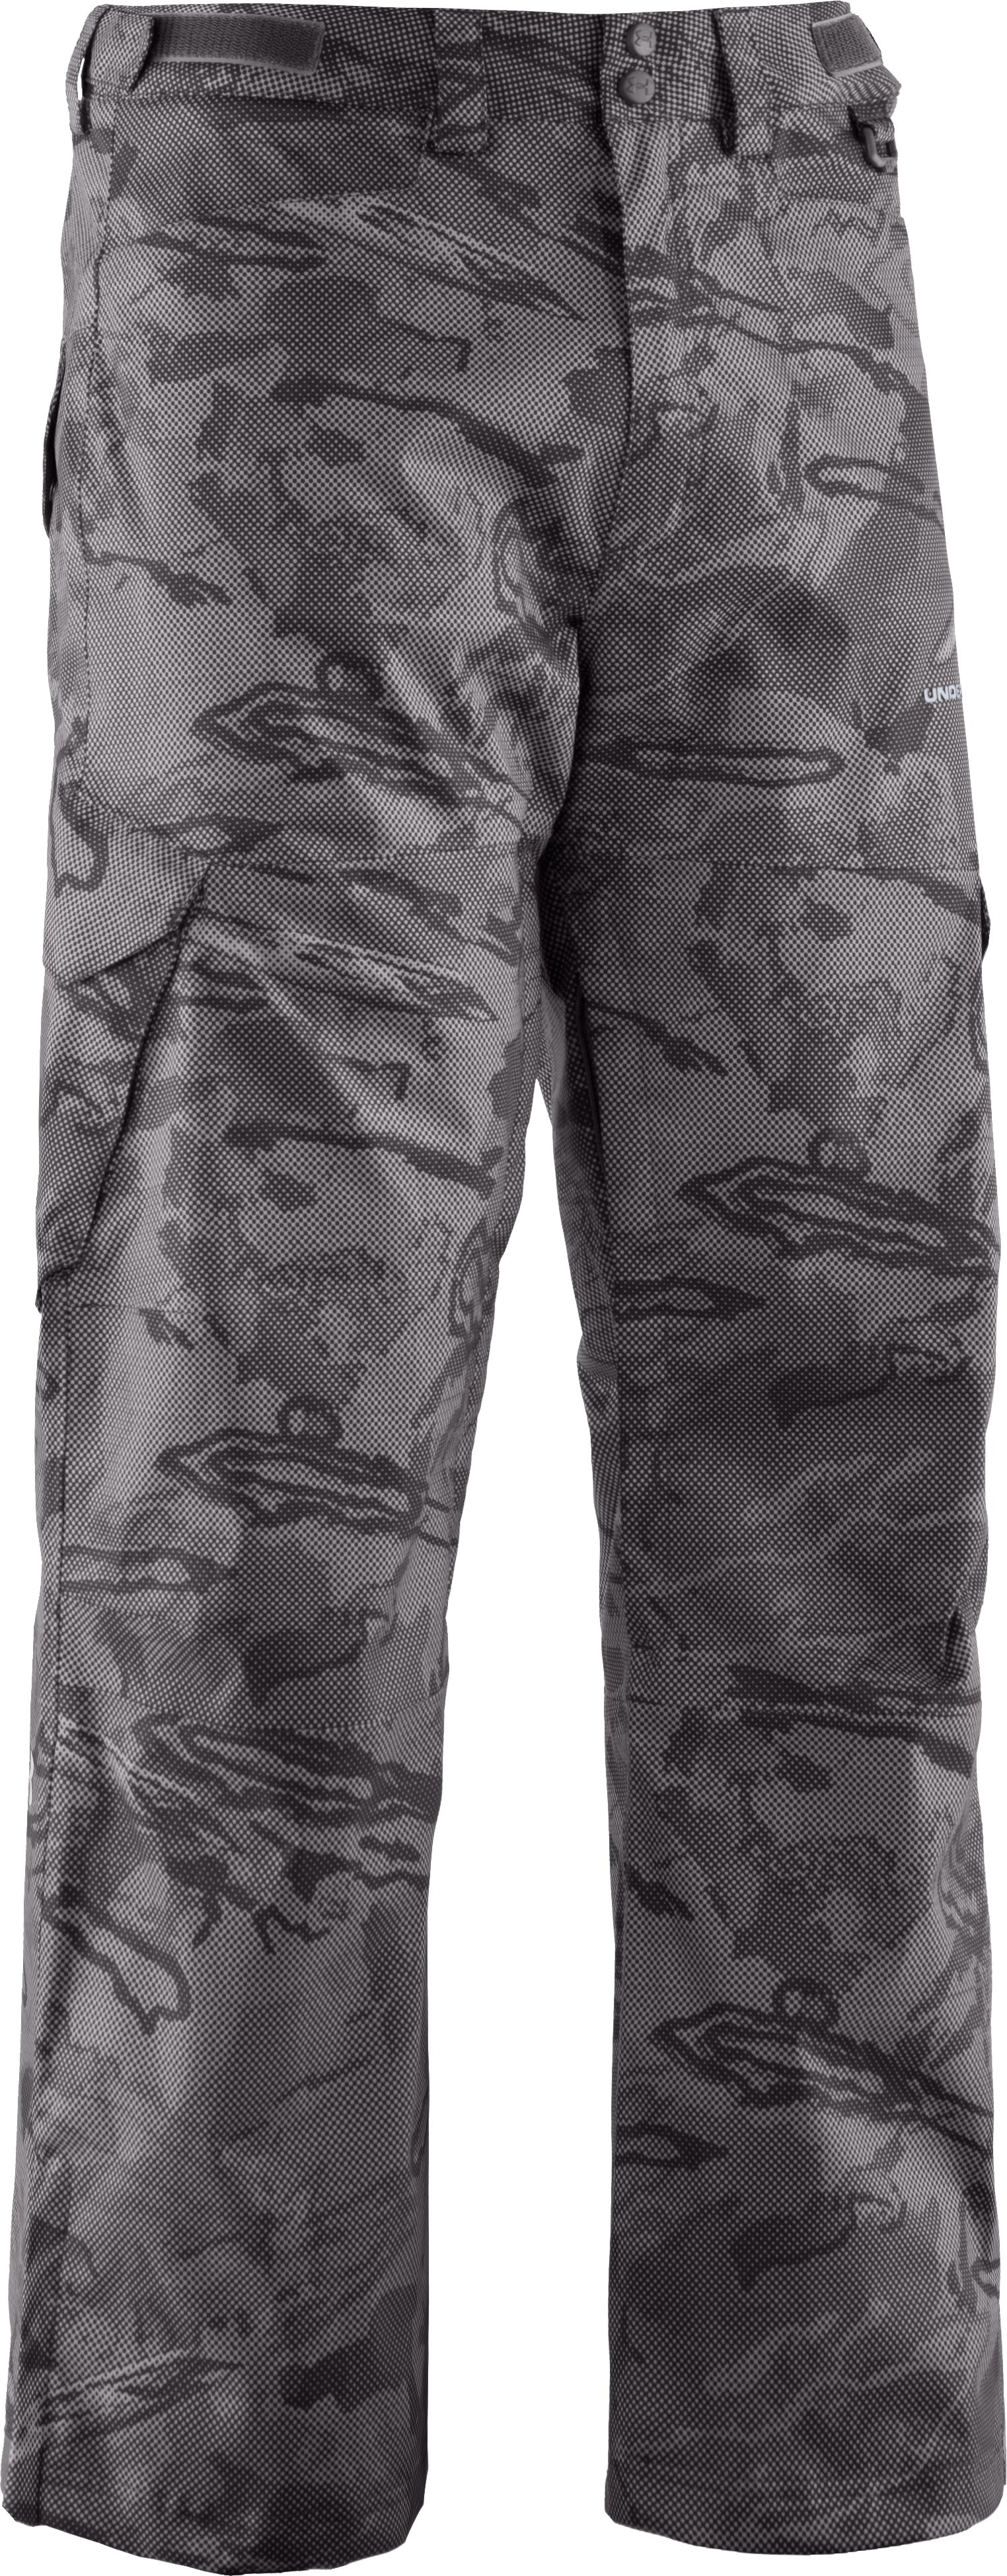 Men's ColdGear® Infrared Snocone Pants, Charcoal